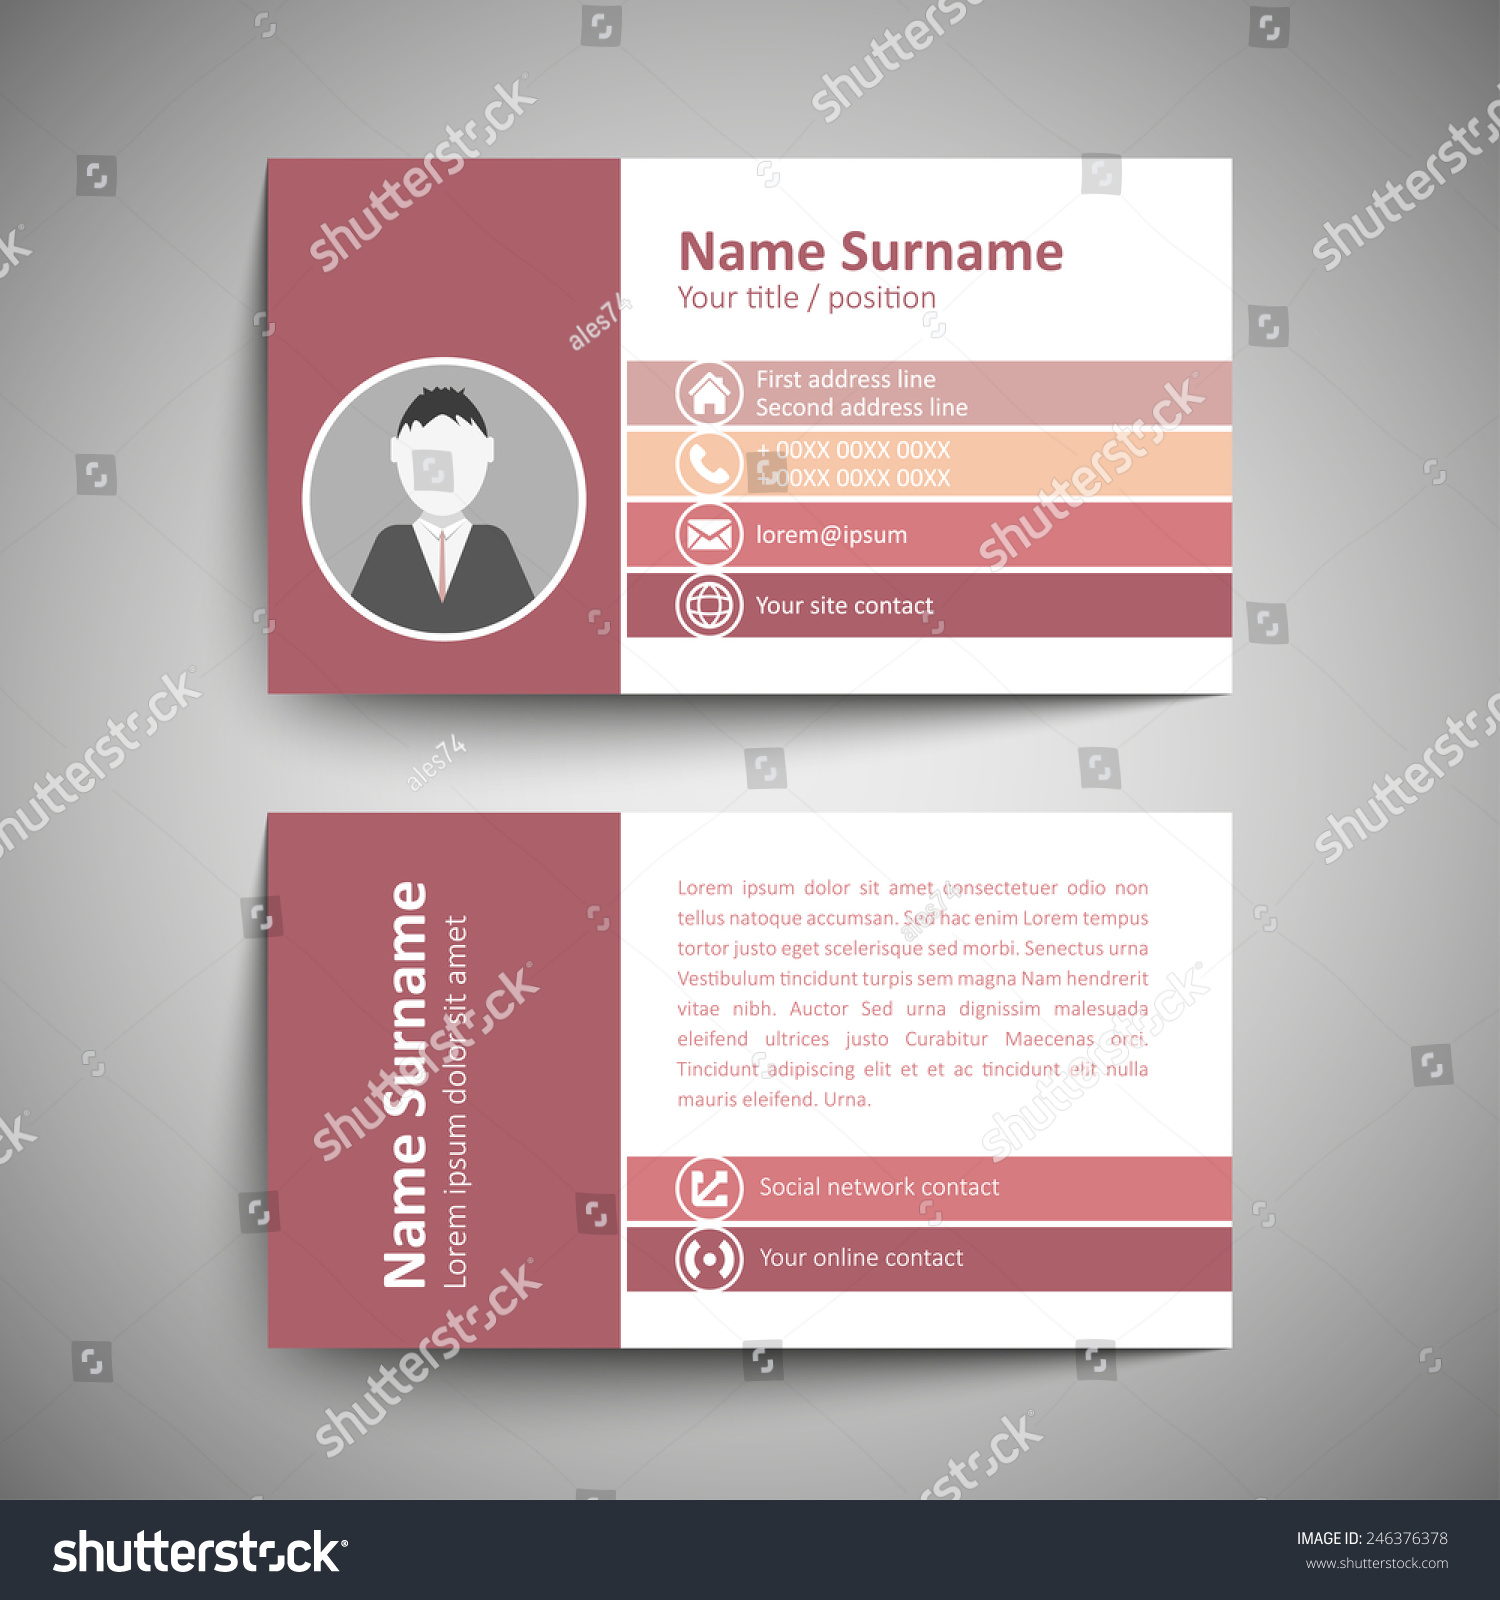 Great Format Of Business Card Contemporary - Business Card Ideas ...